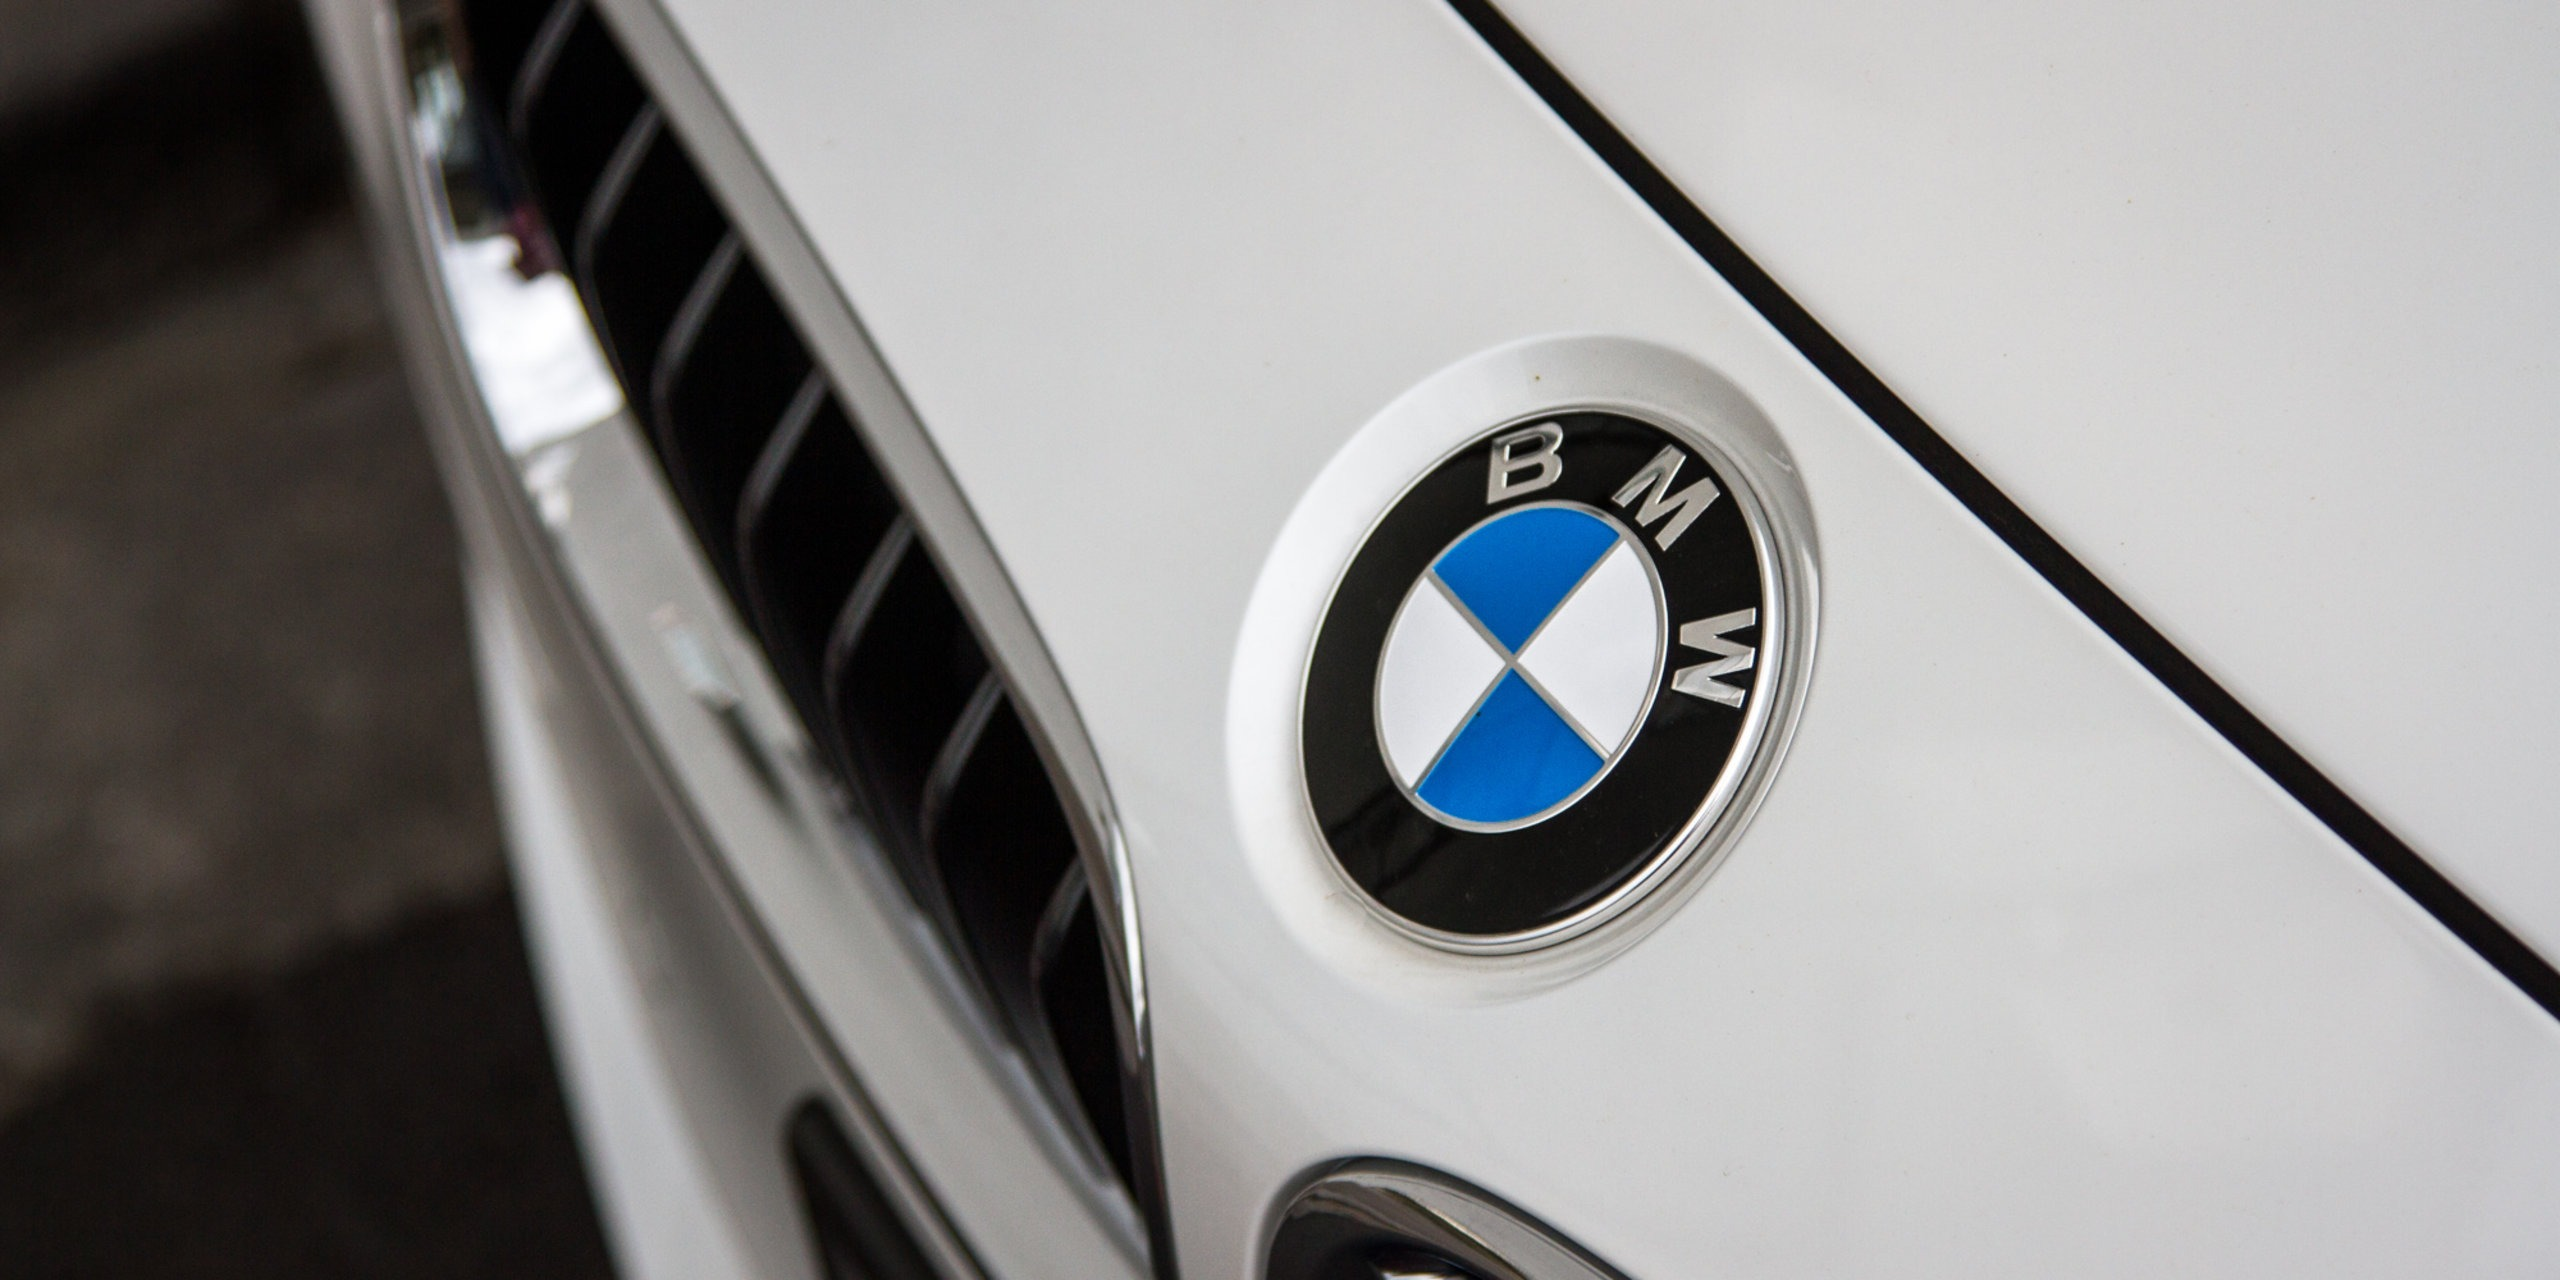 BMW recalls 1 6 million diesels globally over fire risk